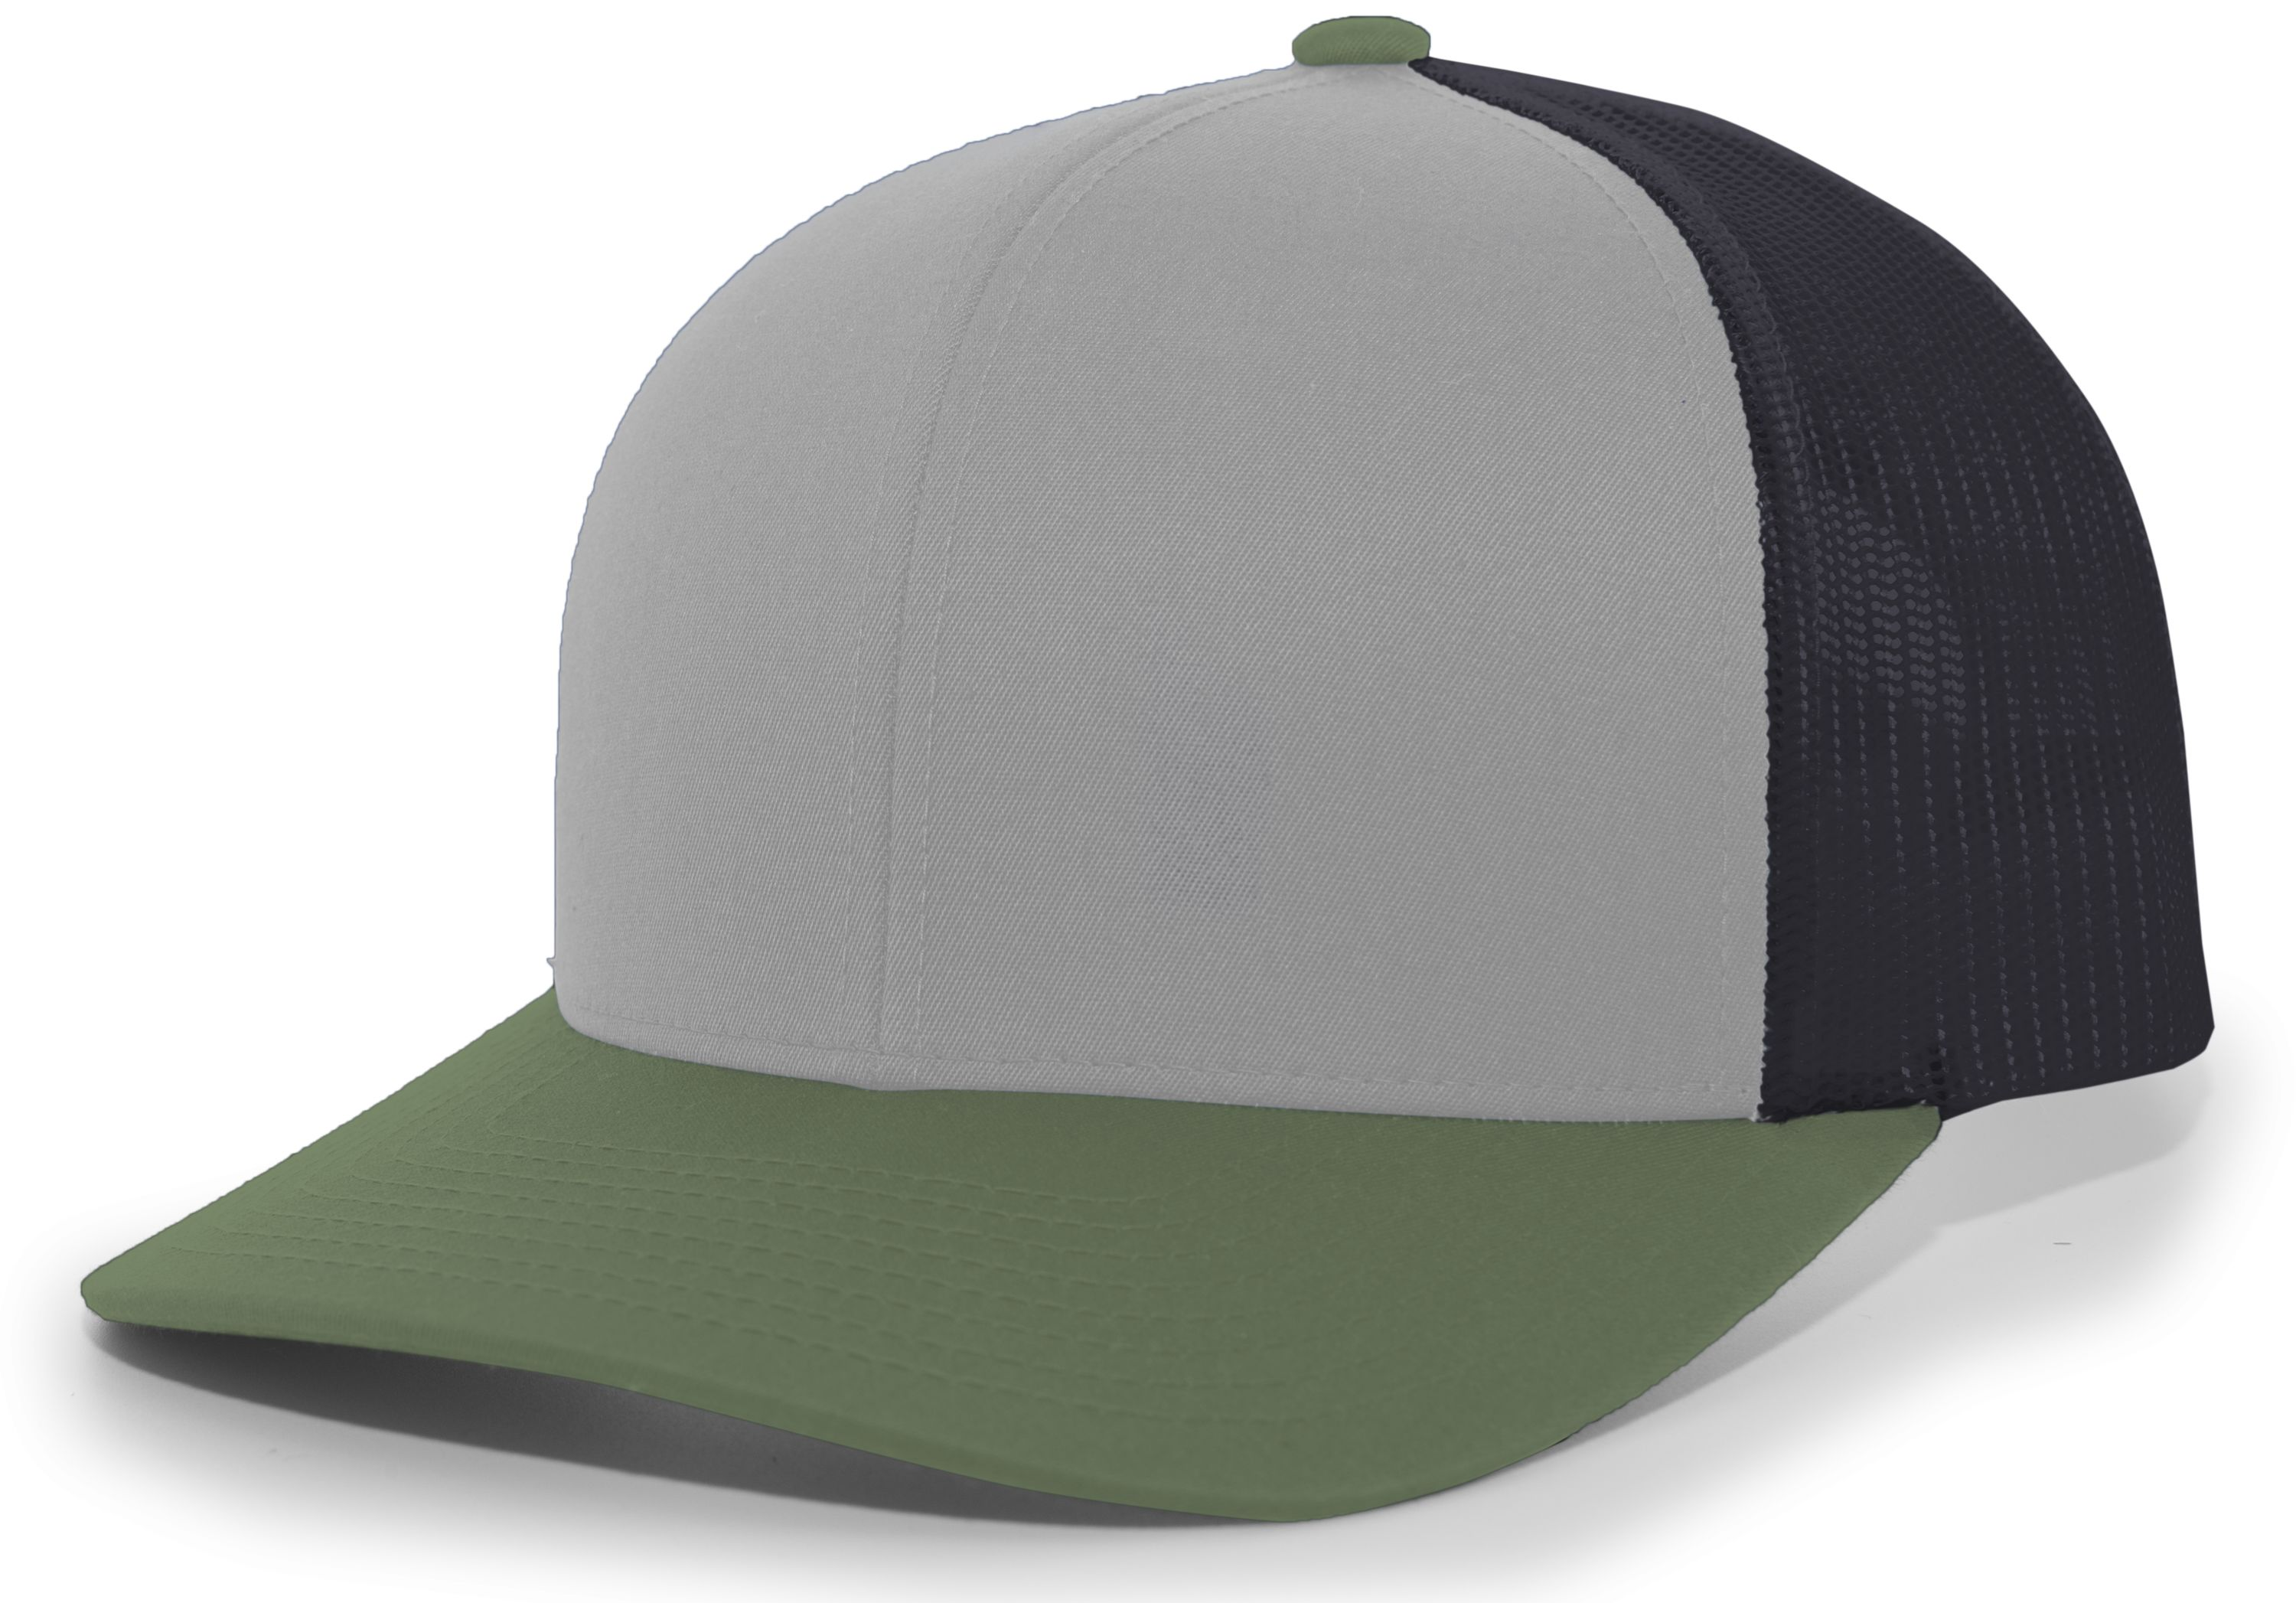 Trucker Snapback Cap - HEATHER GREY/LT CHARCOAL/MOSS GREEN